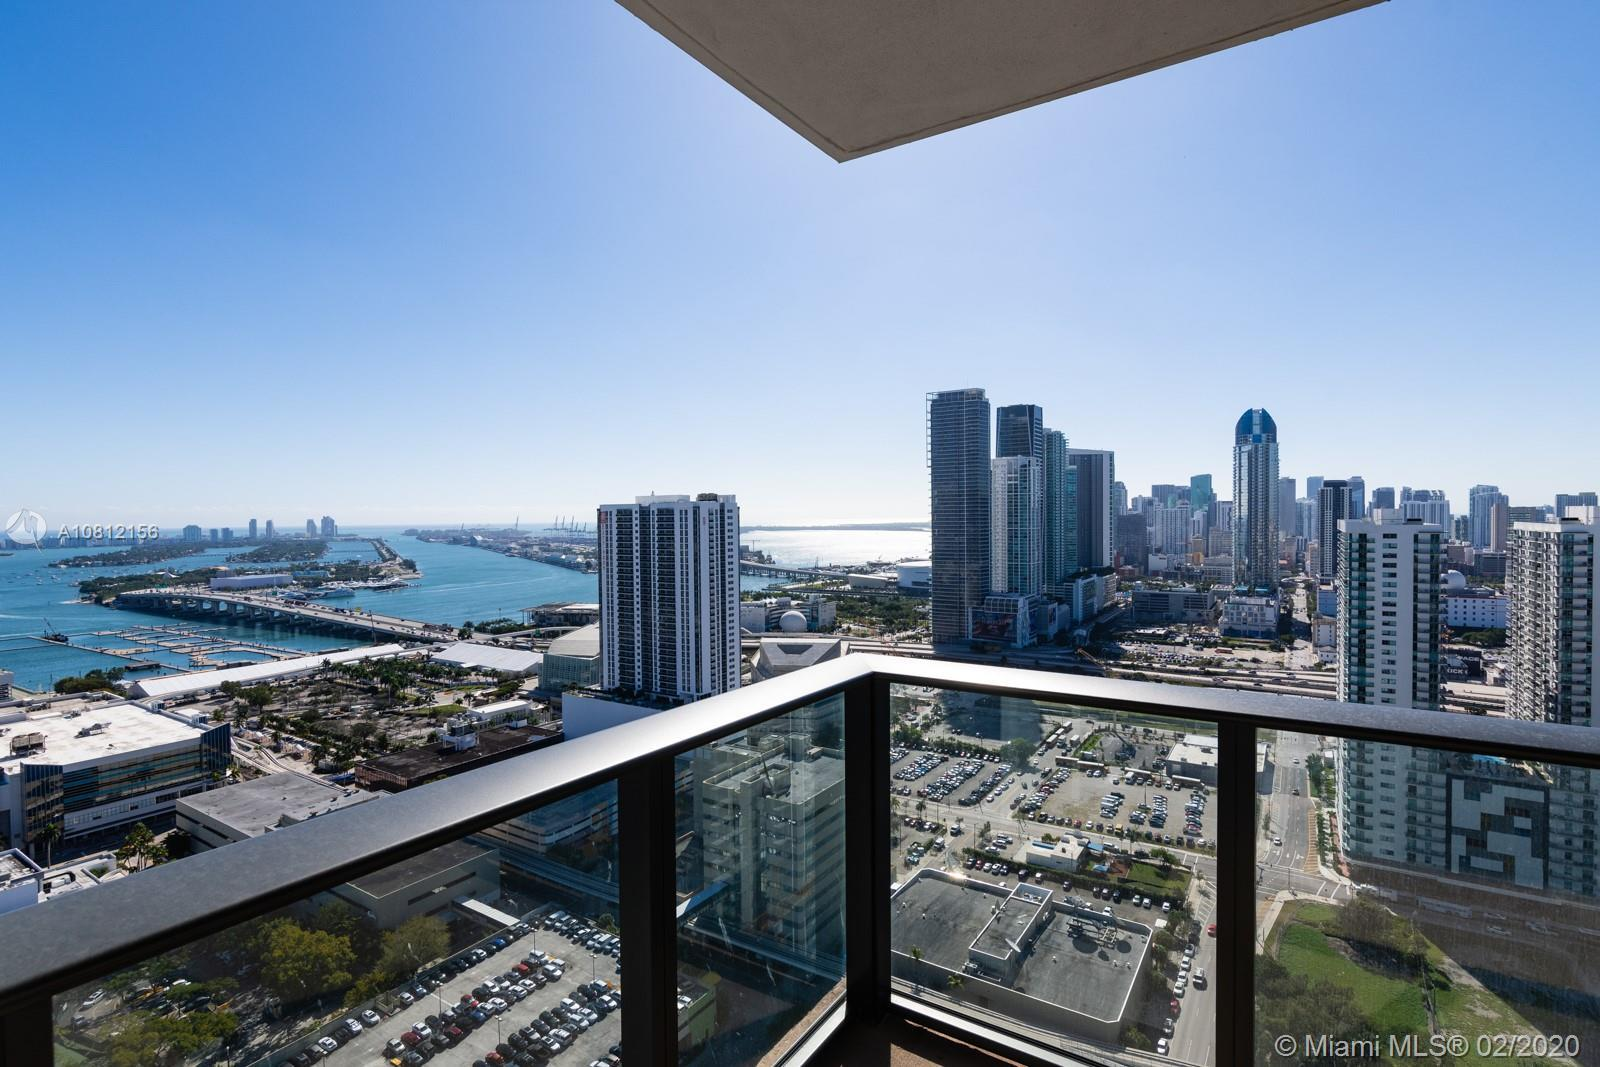 BEST PRICE IN CANVAS! Best View. Corner unit with South East exposure on 36th floor with an amazing